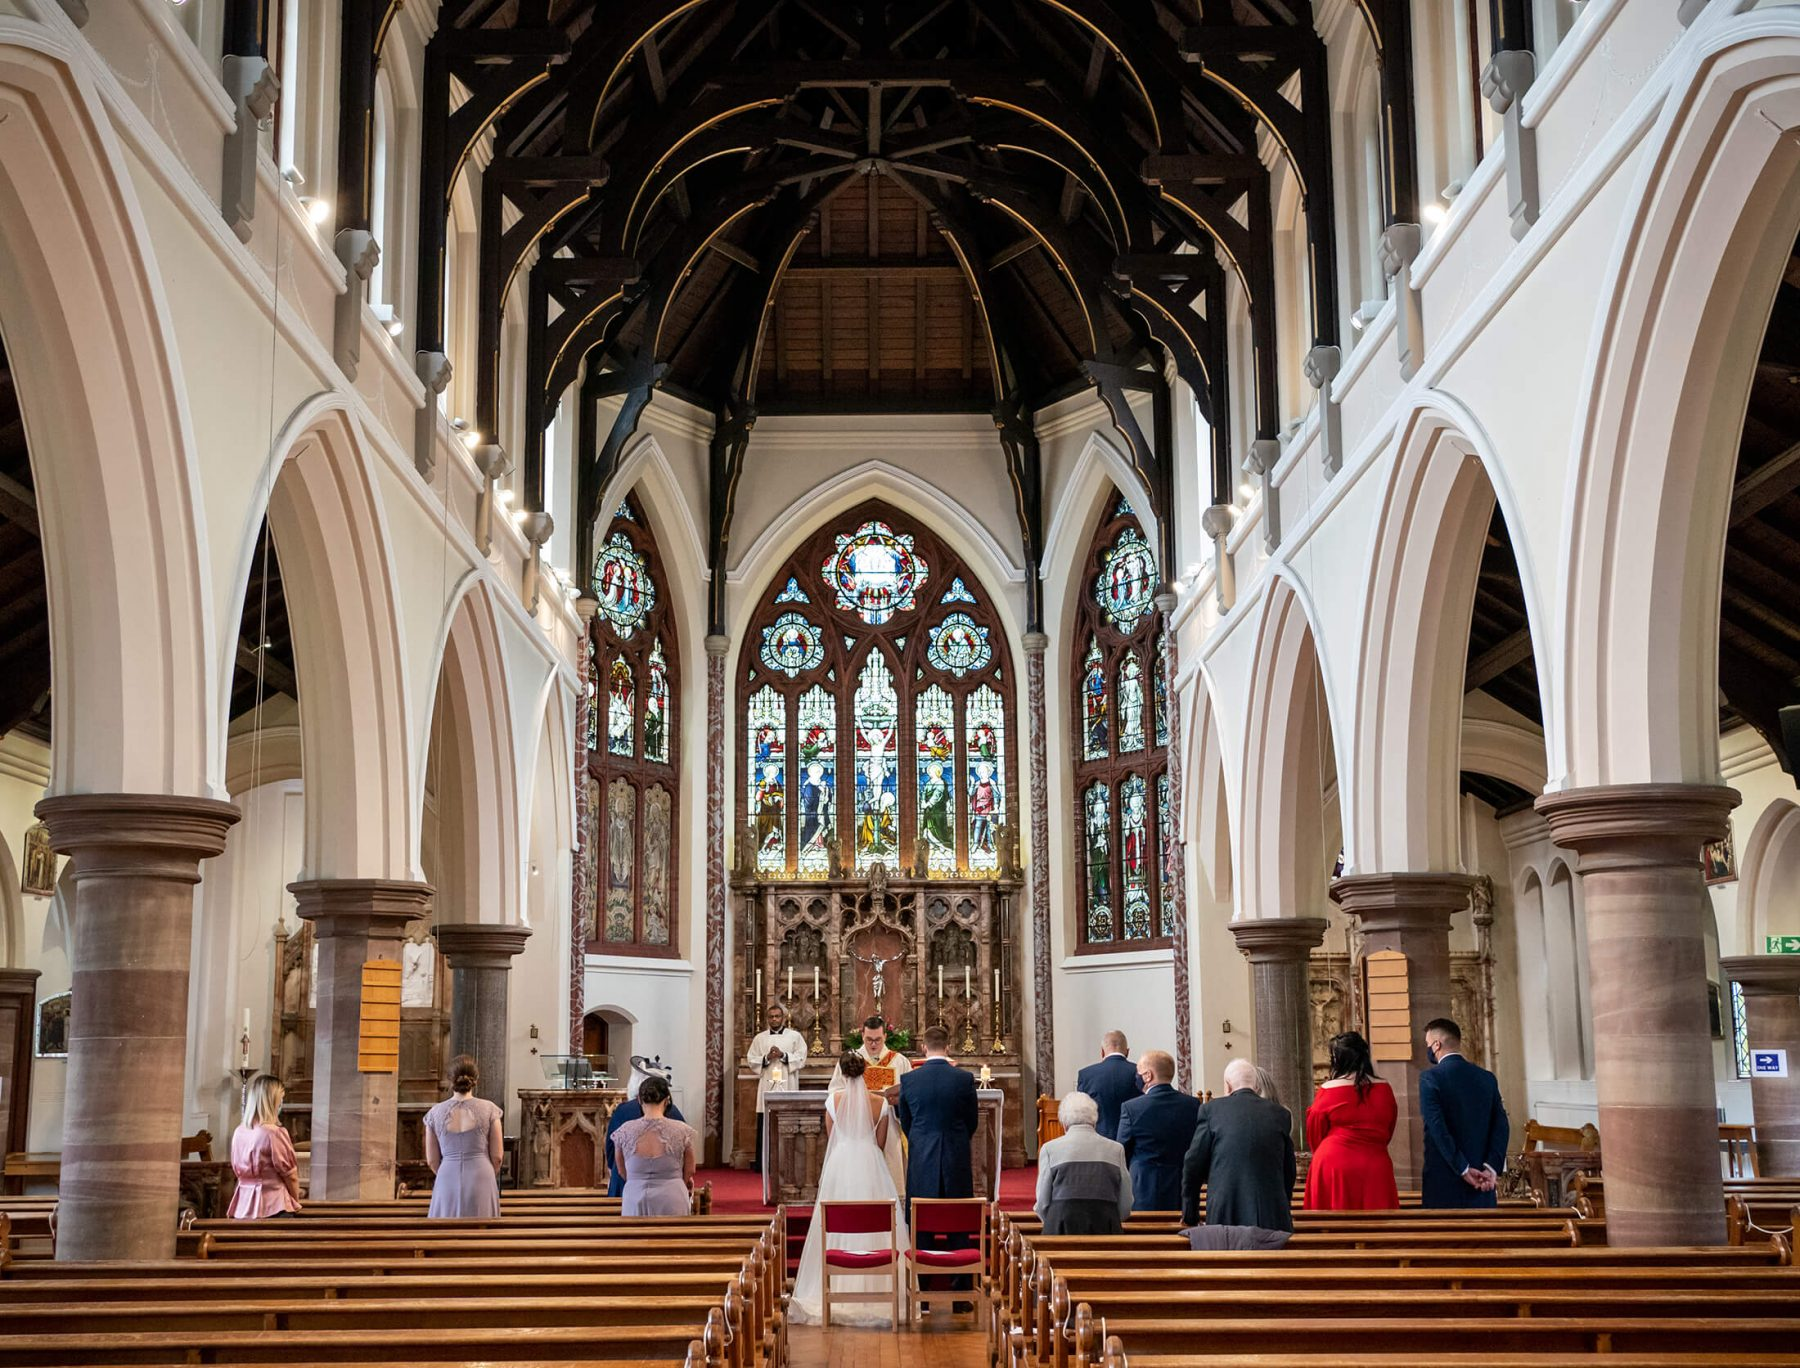 Wedding in Altrincham, Manchester and the guests inside the church while the bride and groom get married